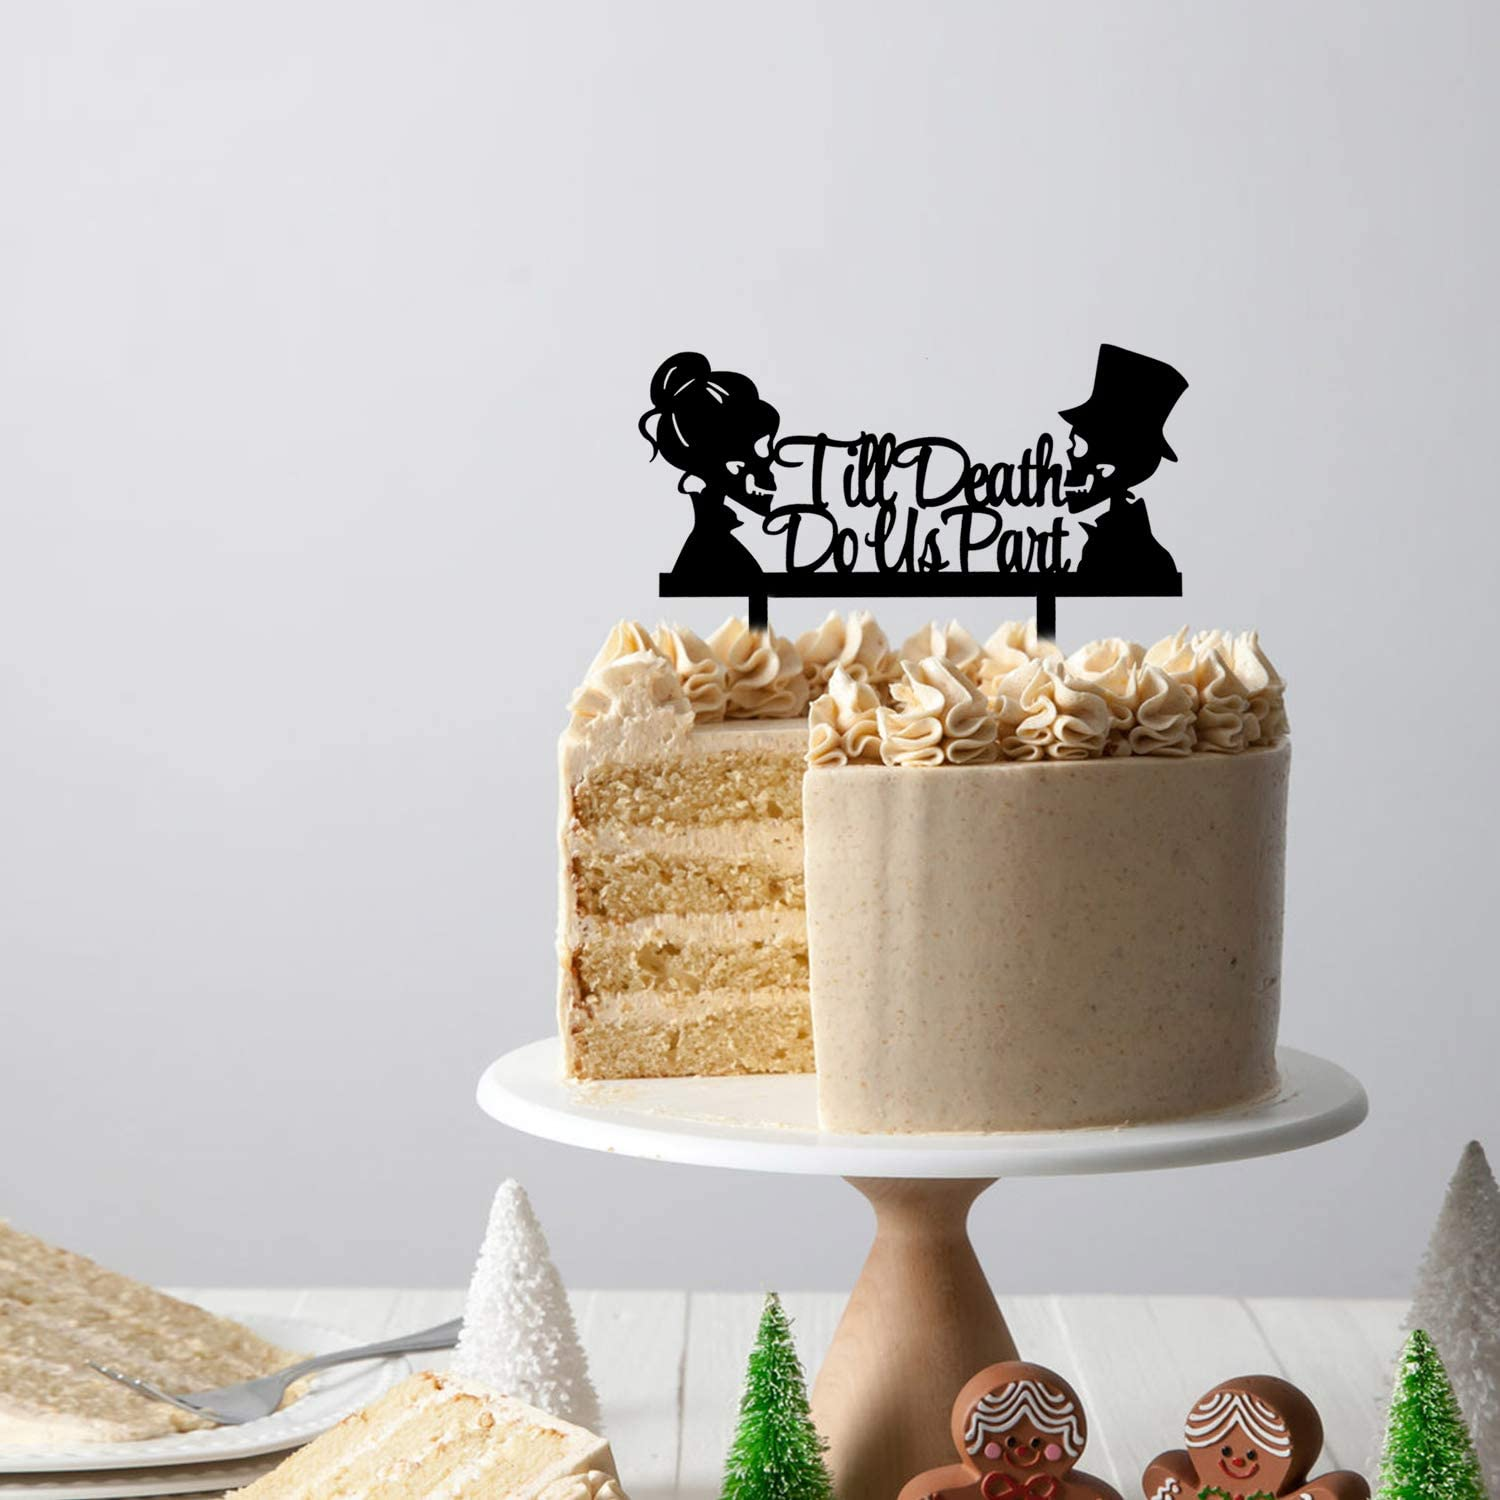 Acrylic Mr and Mrs Skull Wedding Cake Topper Halloween Party Decorations Day of the Dead Sign Till Death Do Us Part Cake Topper